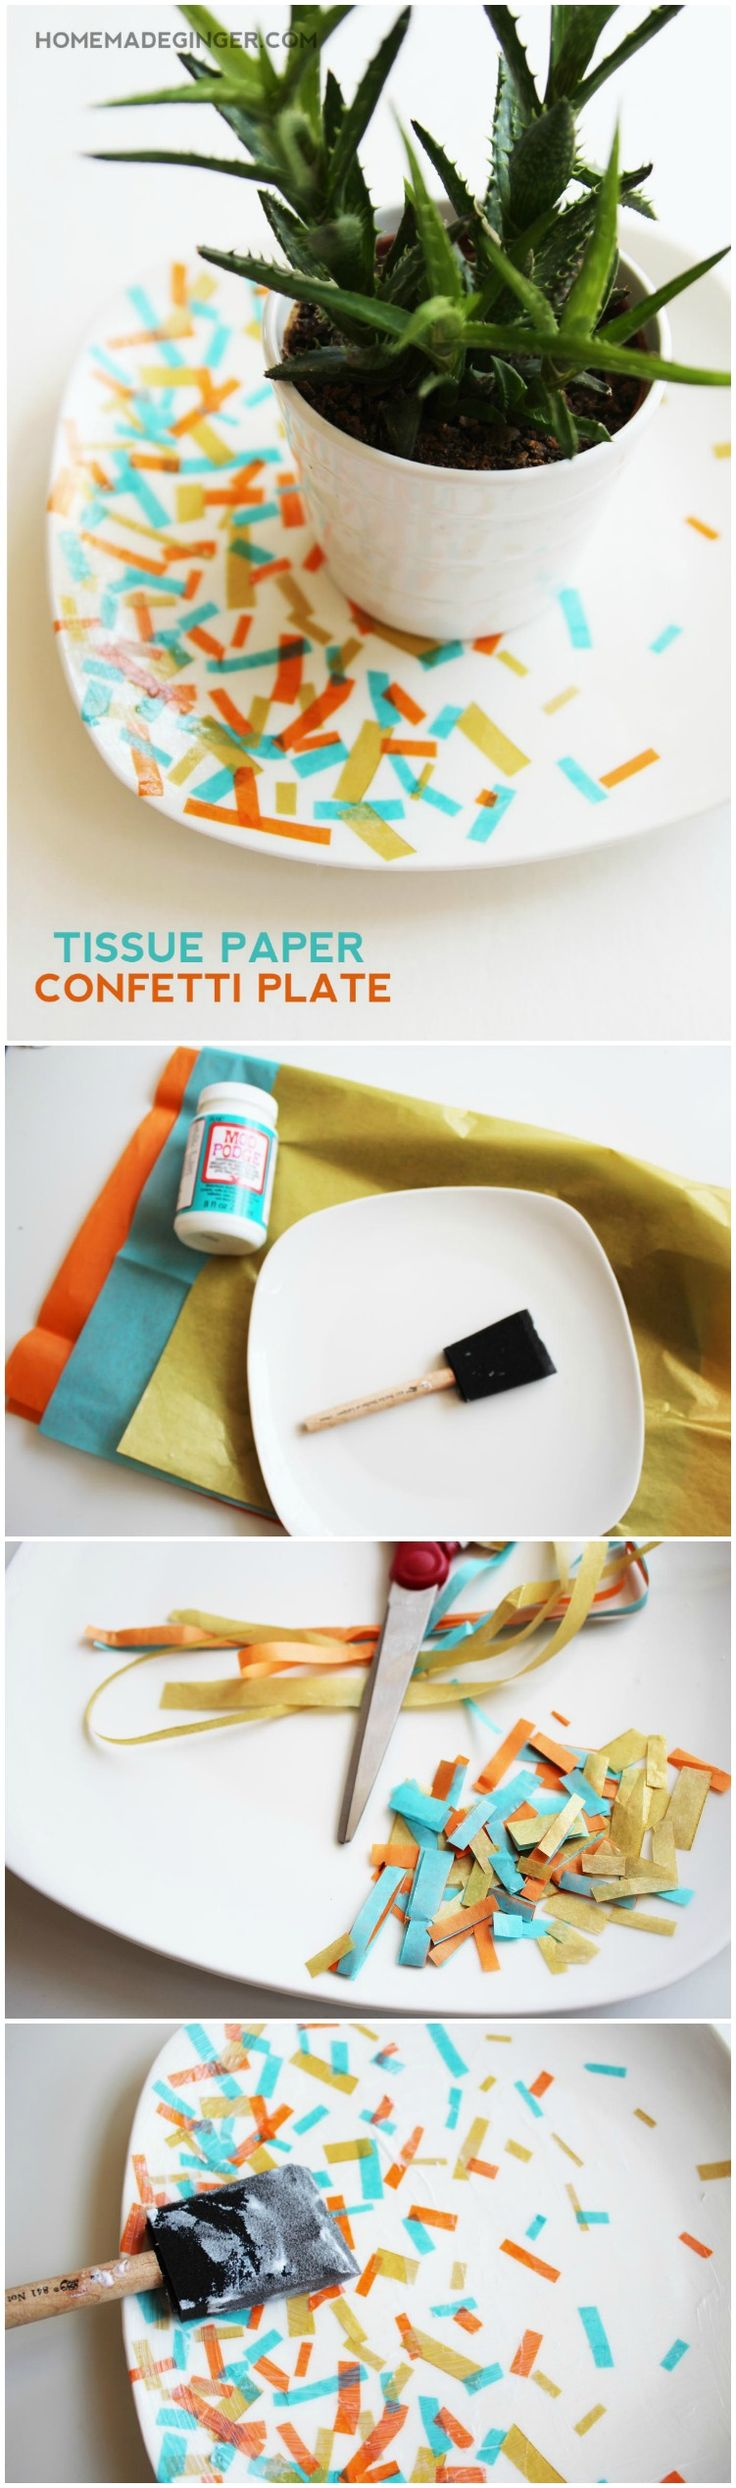 Use Various Colors Of Tissue Paper And Dishwasher Safe Mod Podge To  Decorate A Plate In